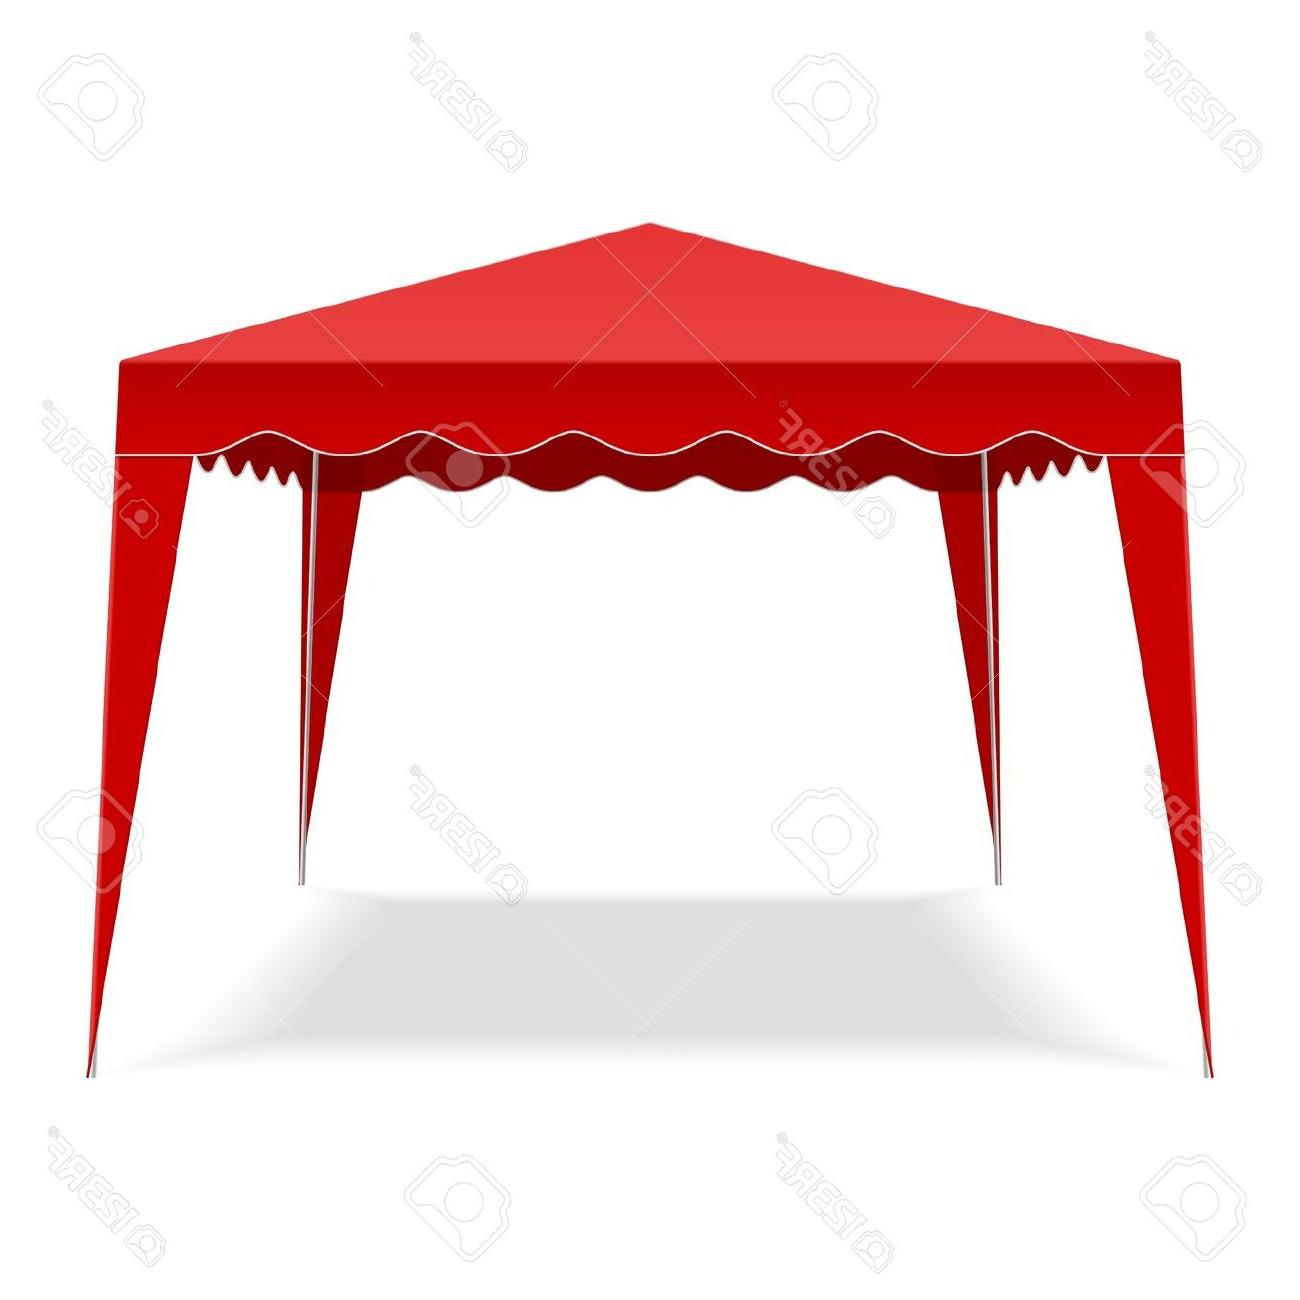 Party tent clipart 2 » Clipart Station.